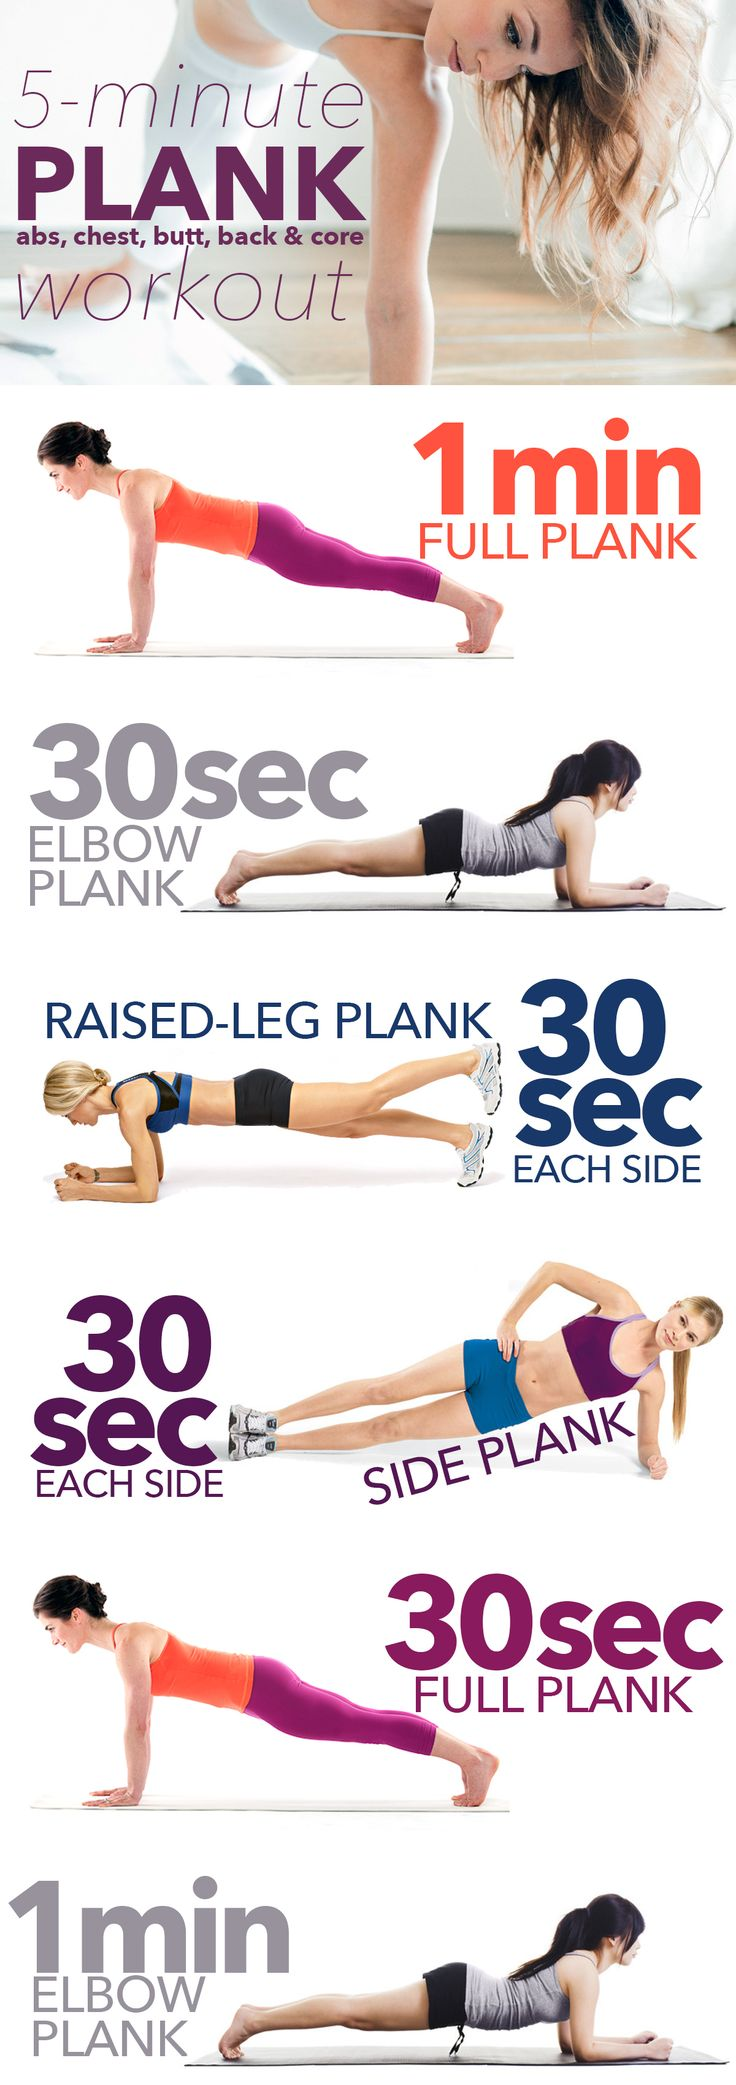 5-minute-plank-workout-infographic.jpg 1 200 × 3 400 pixels